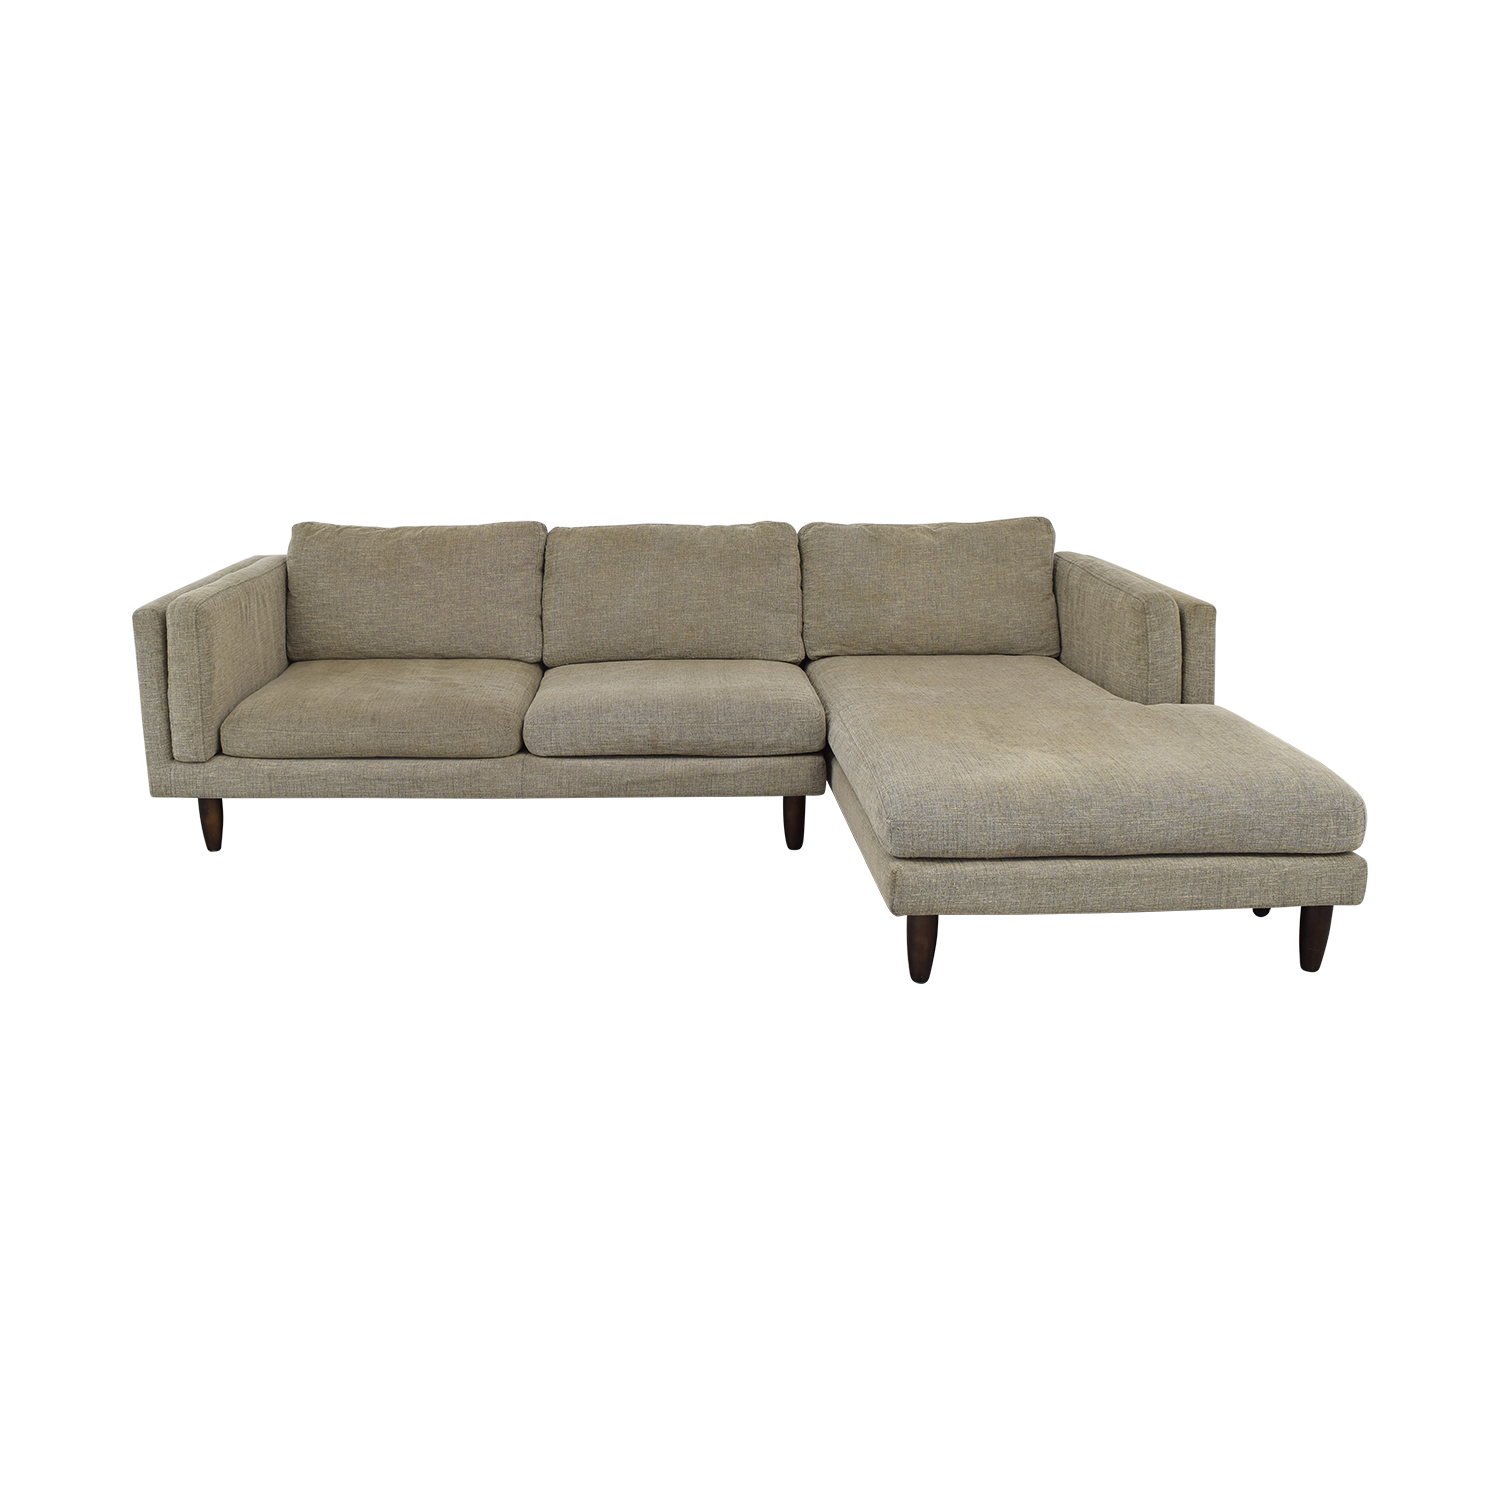 Jason Furniture Chaise Sectional Couch price